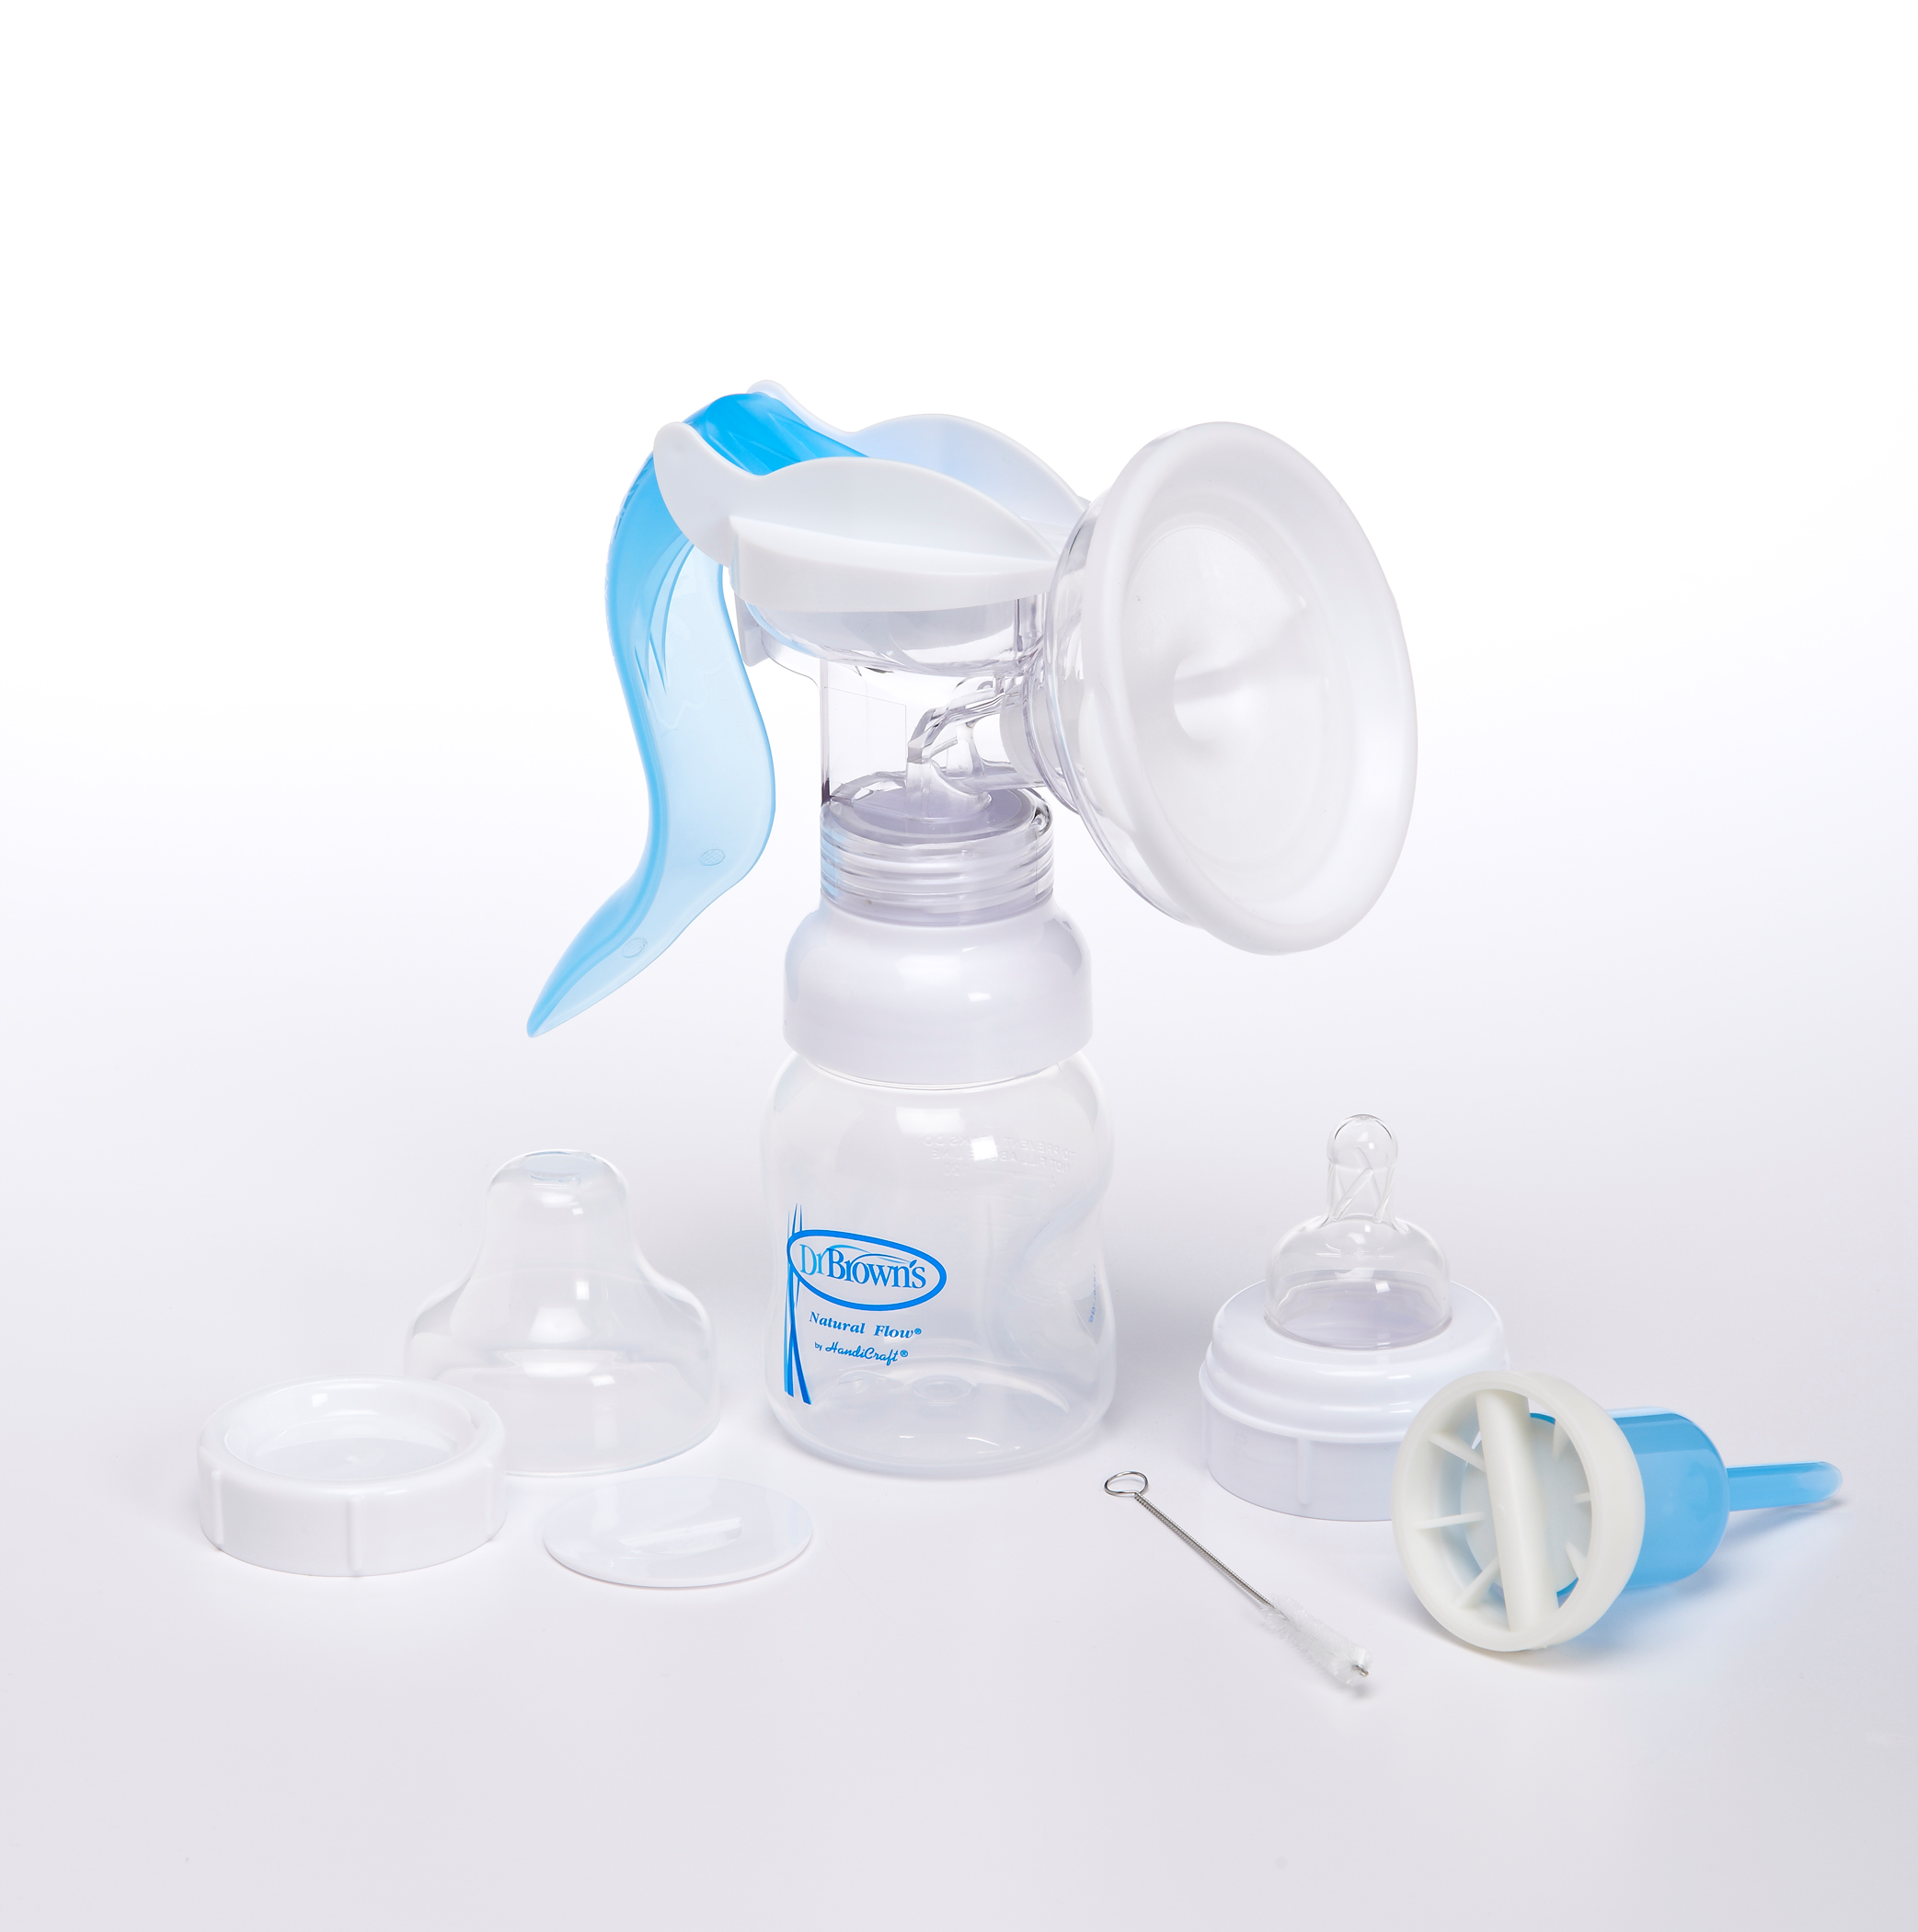 Breastpump with accessories